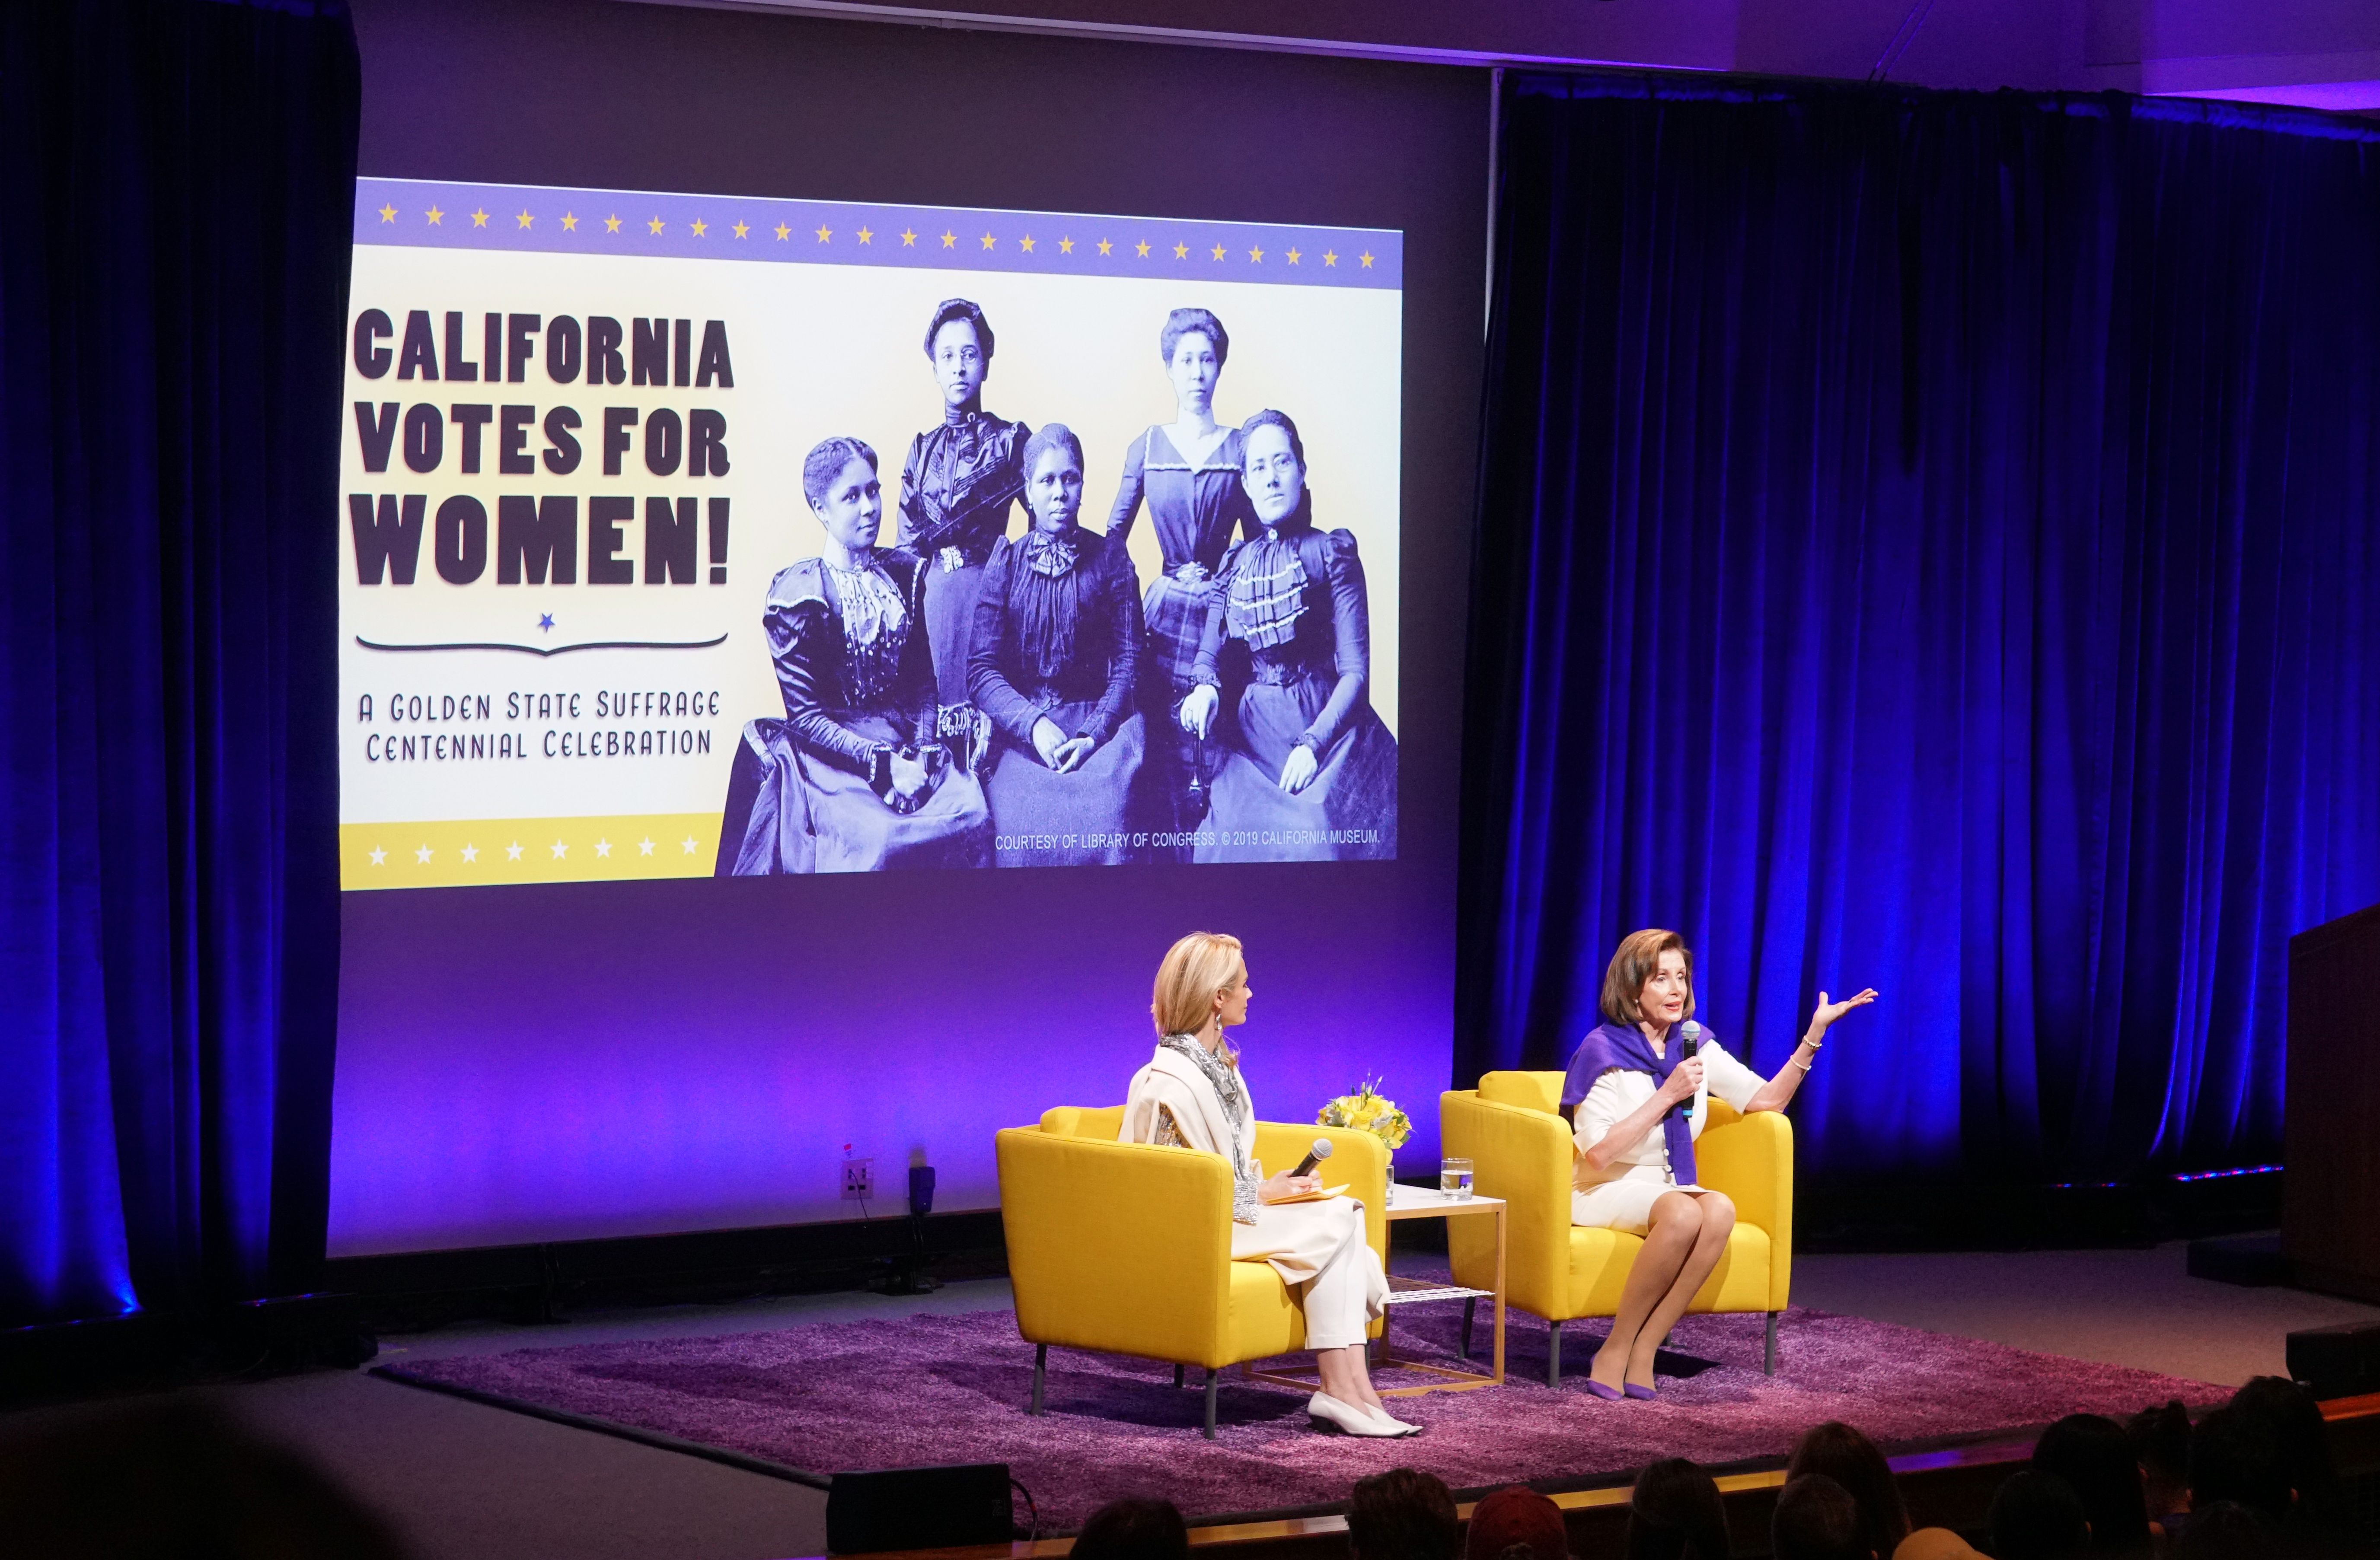 Congresswoman Nancy Pelosi participates in a moderated conversation with California First Partner Jennifer Siebel Newsom for a discussion on the women's suffrage movement in California.